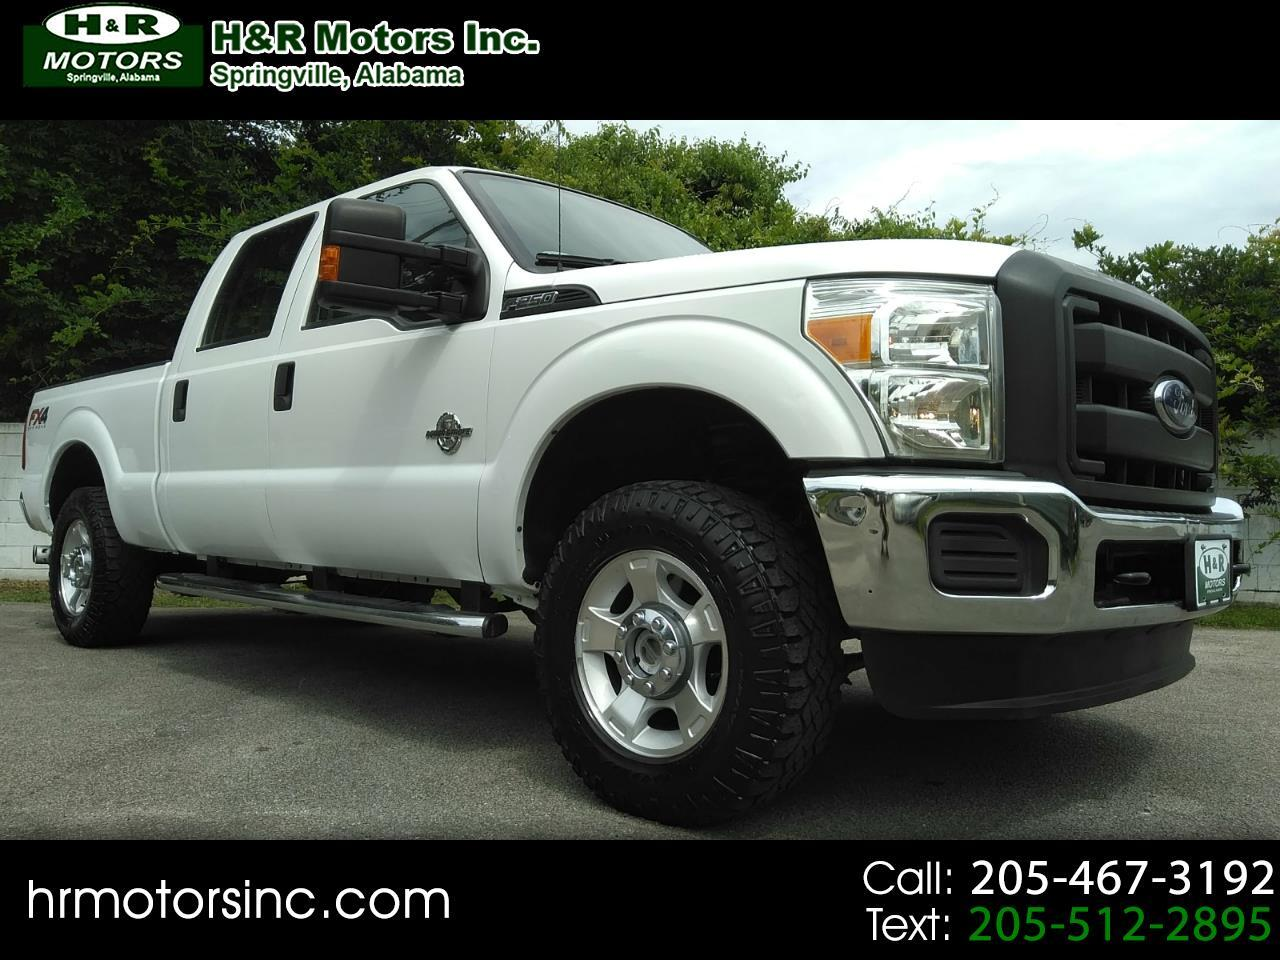 2014 Ford Super Duty F-250 SRW SUPER DUTY